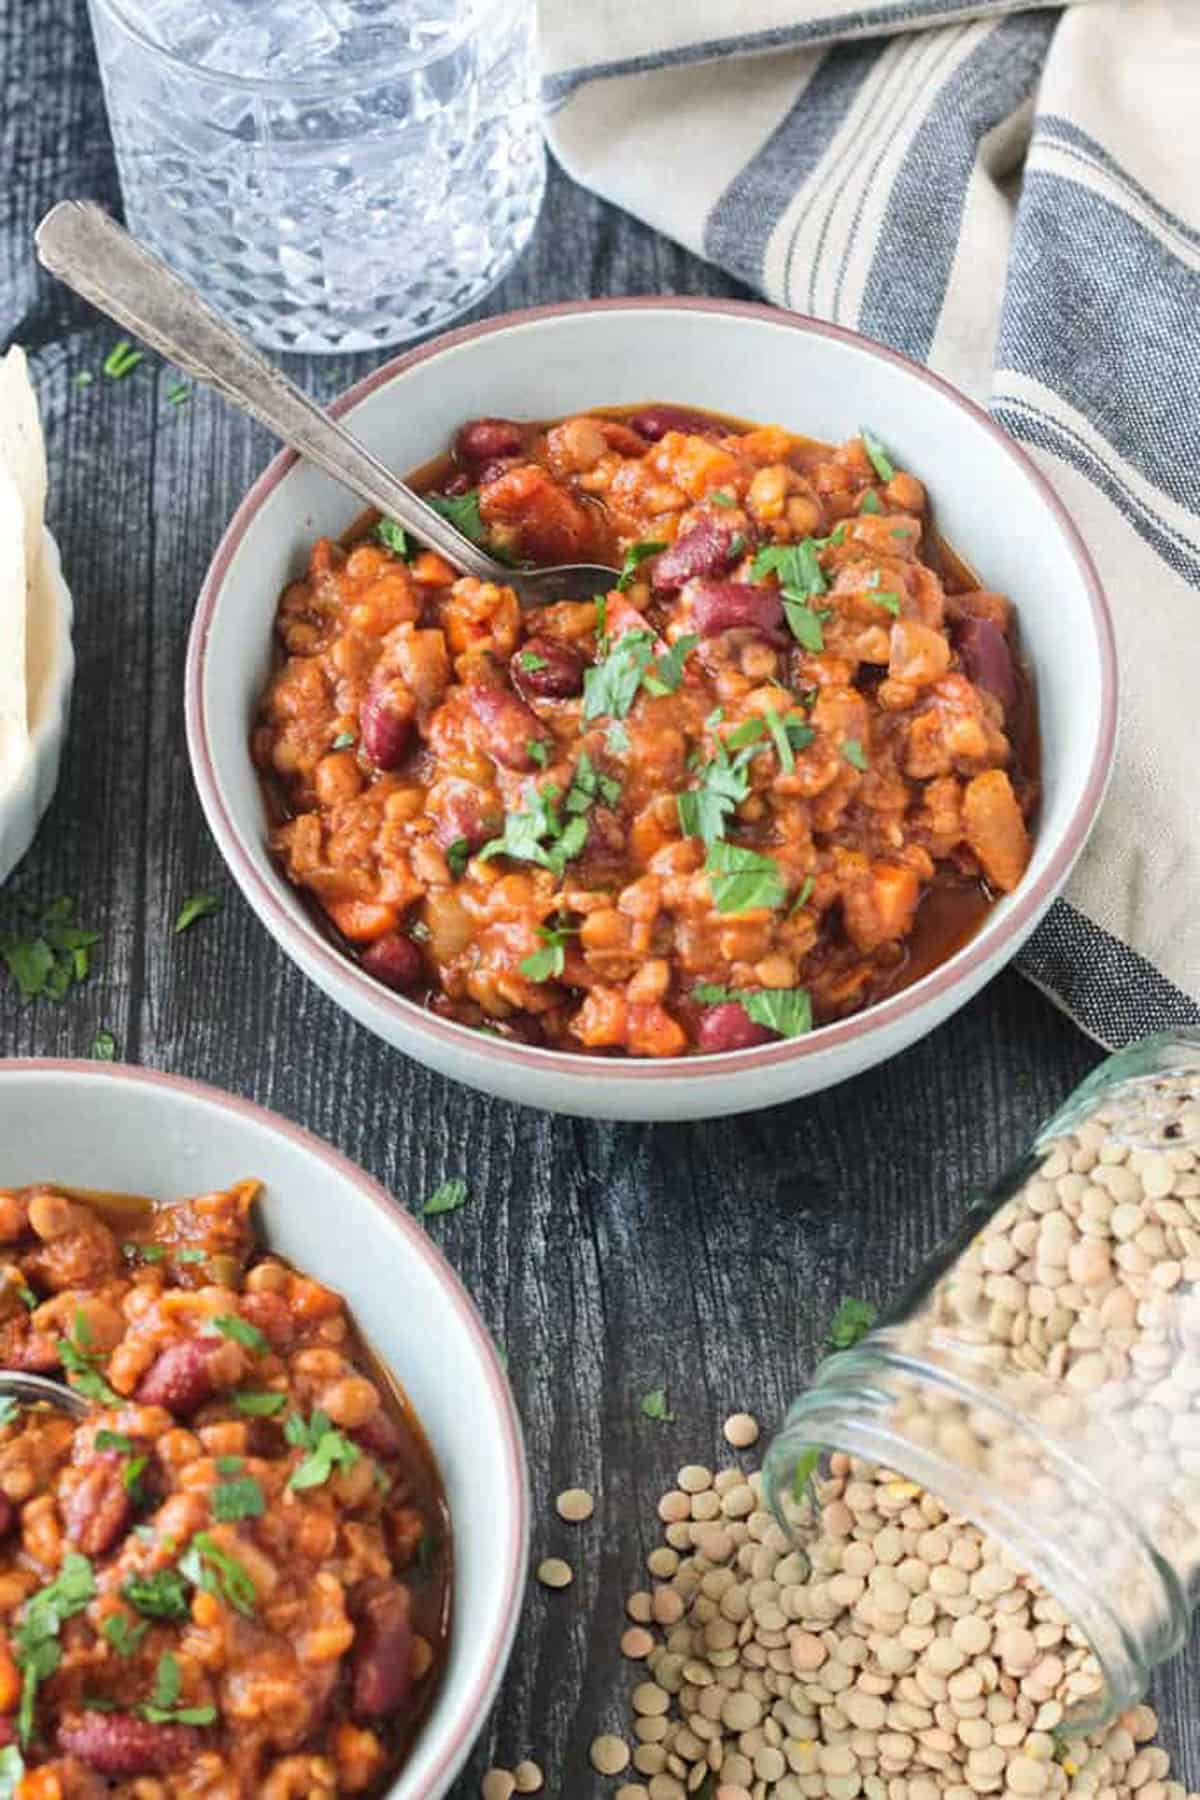 Hearty chili topped with kidney beans and chopped cilantro.